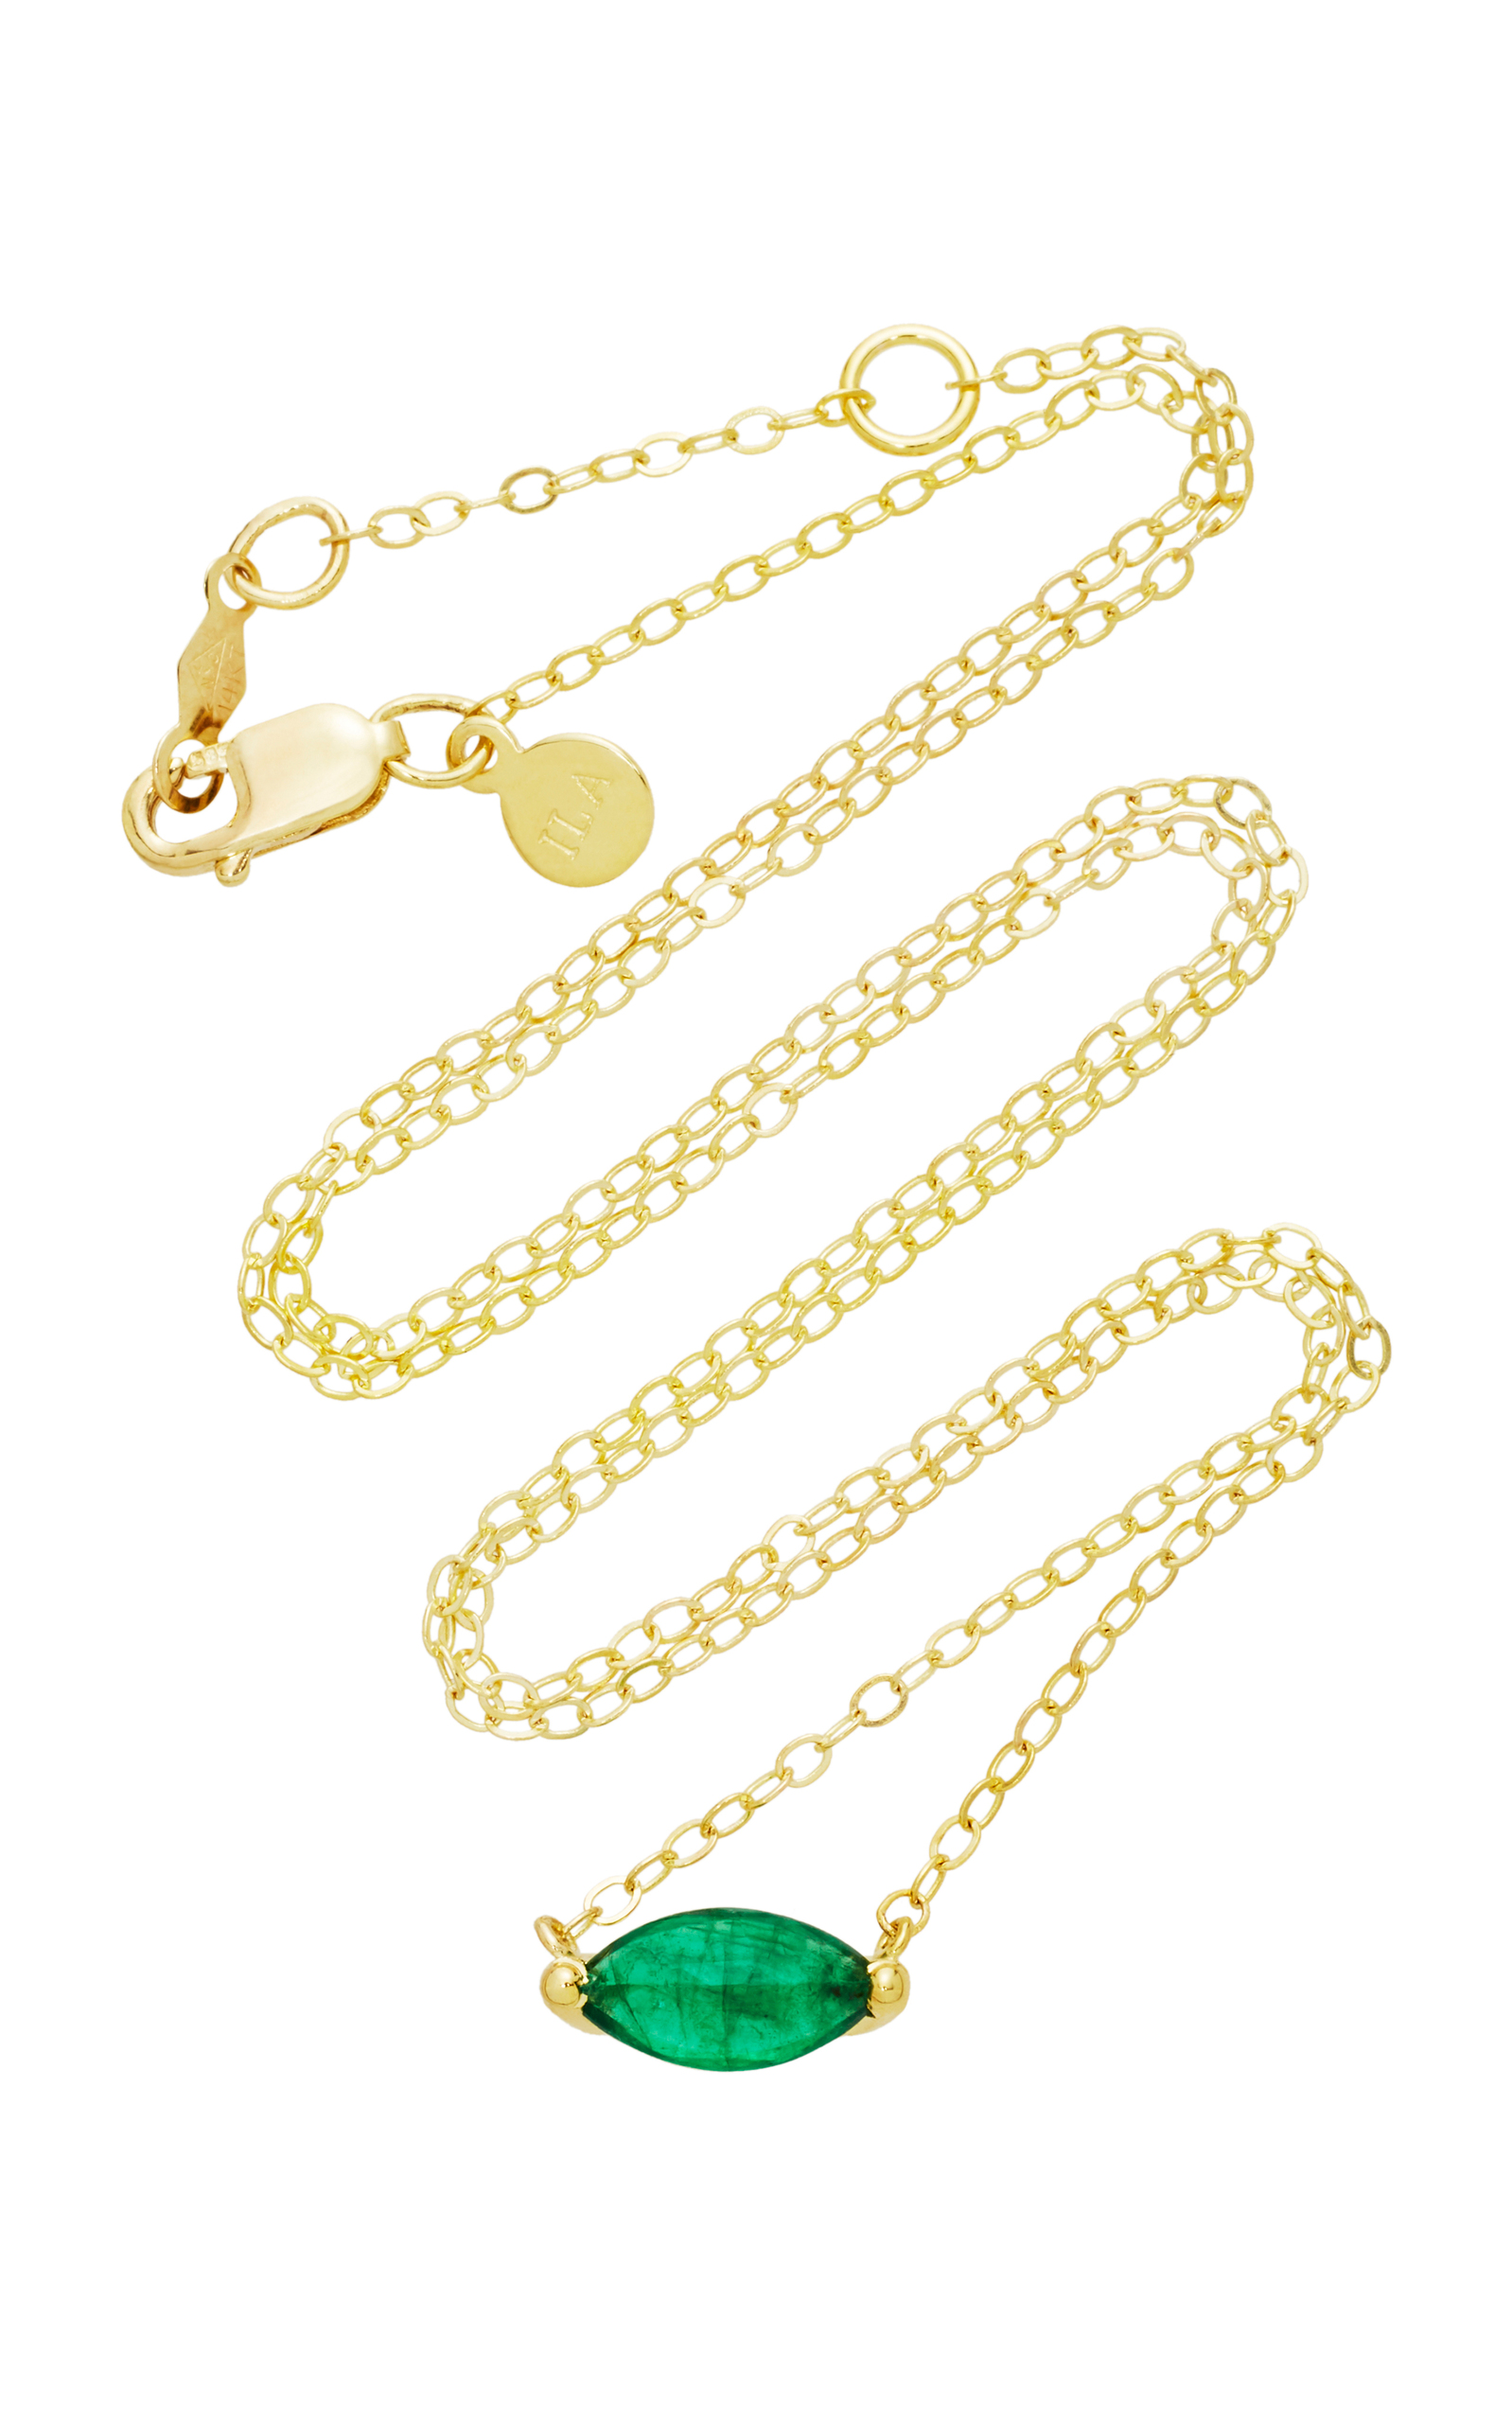 ILA 14K GOLD EMERALD NECKLACE